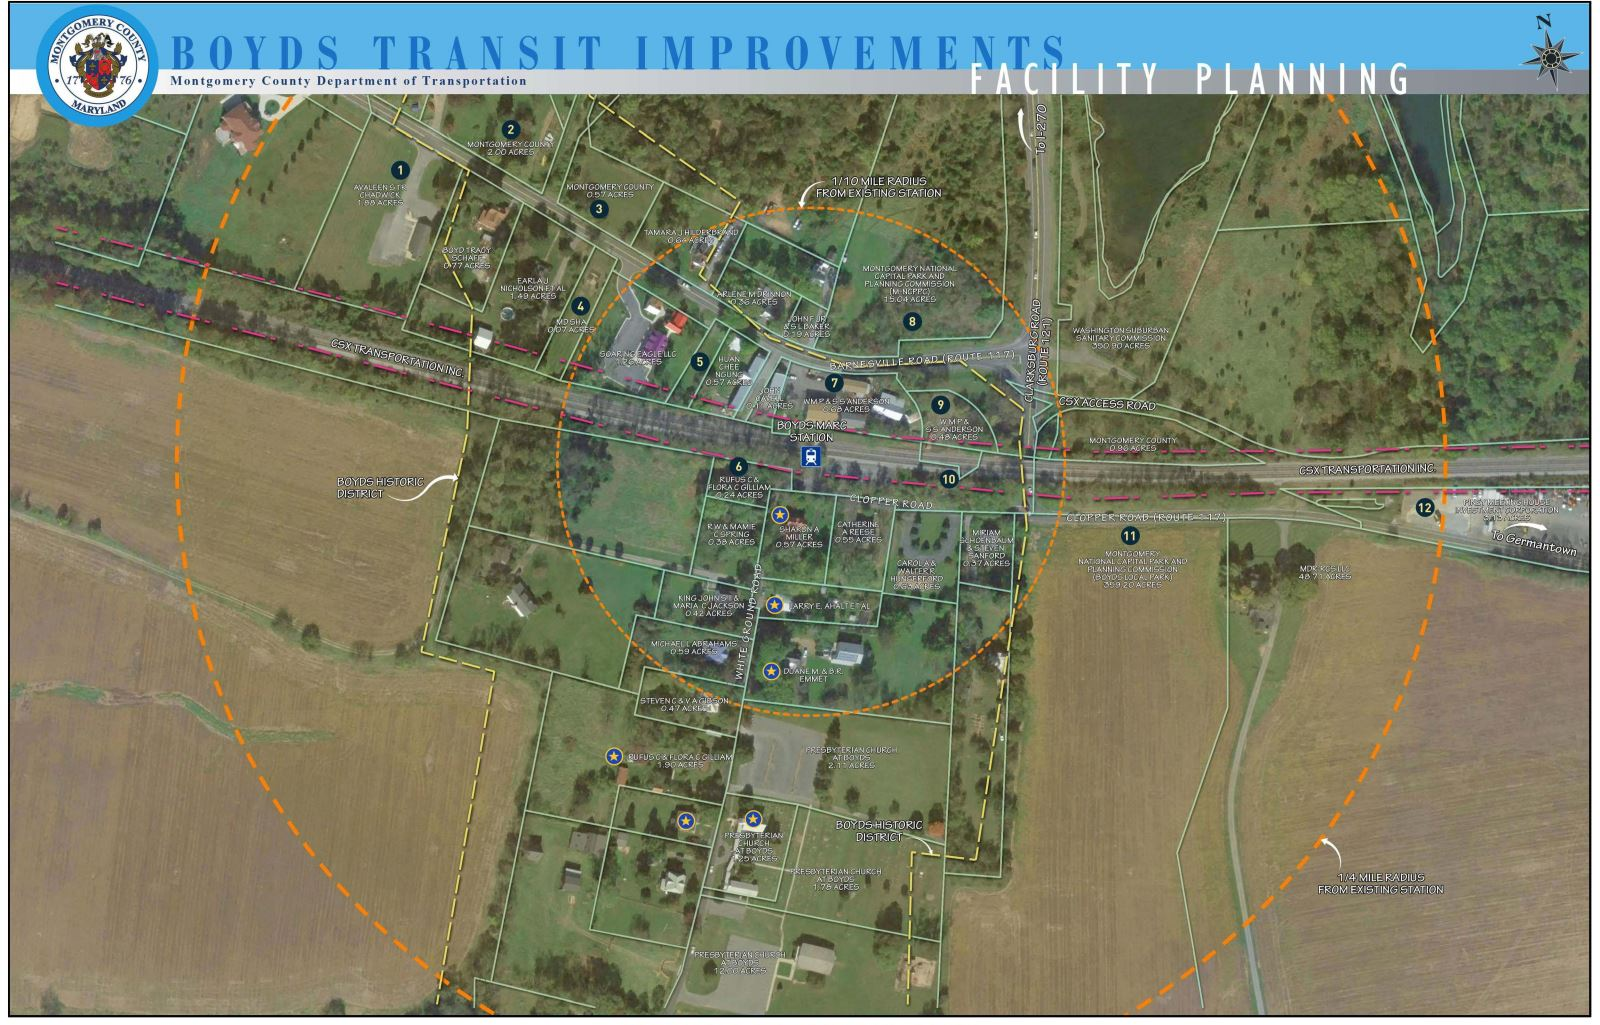 Boyds Transit Improvements